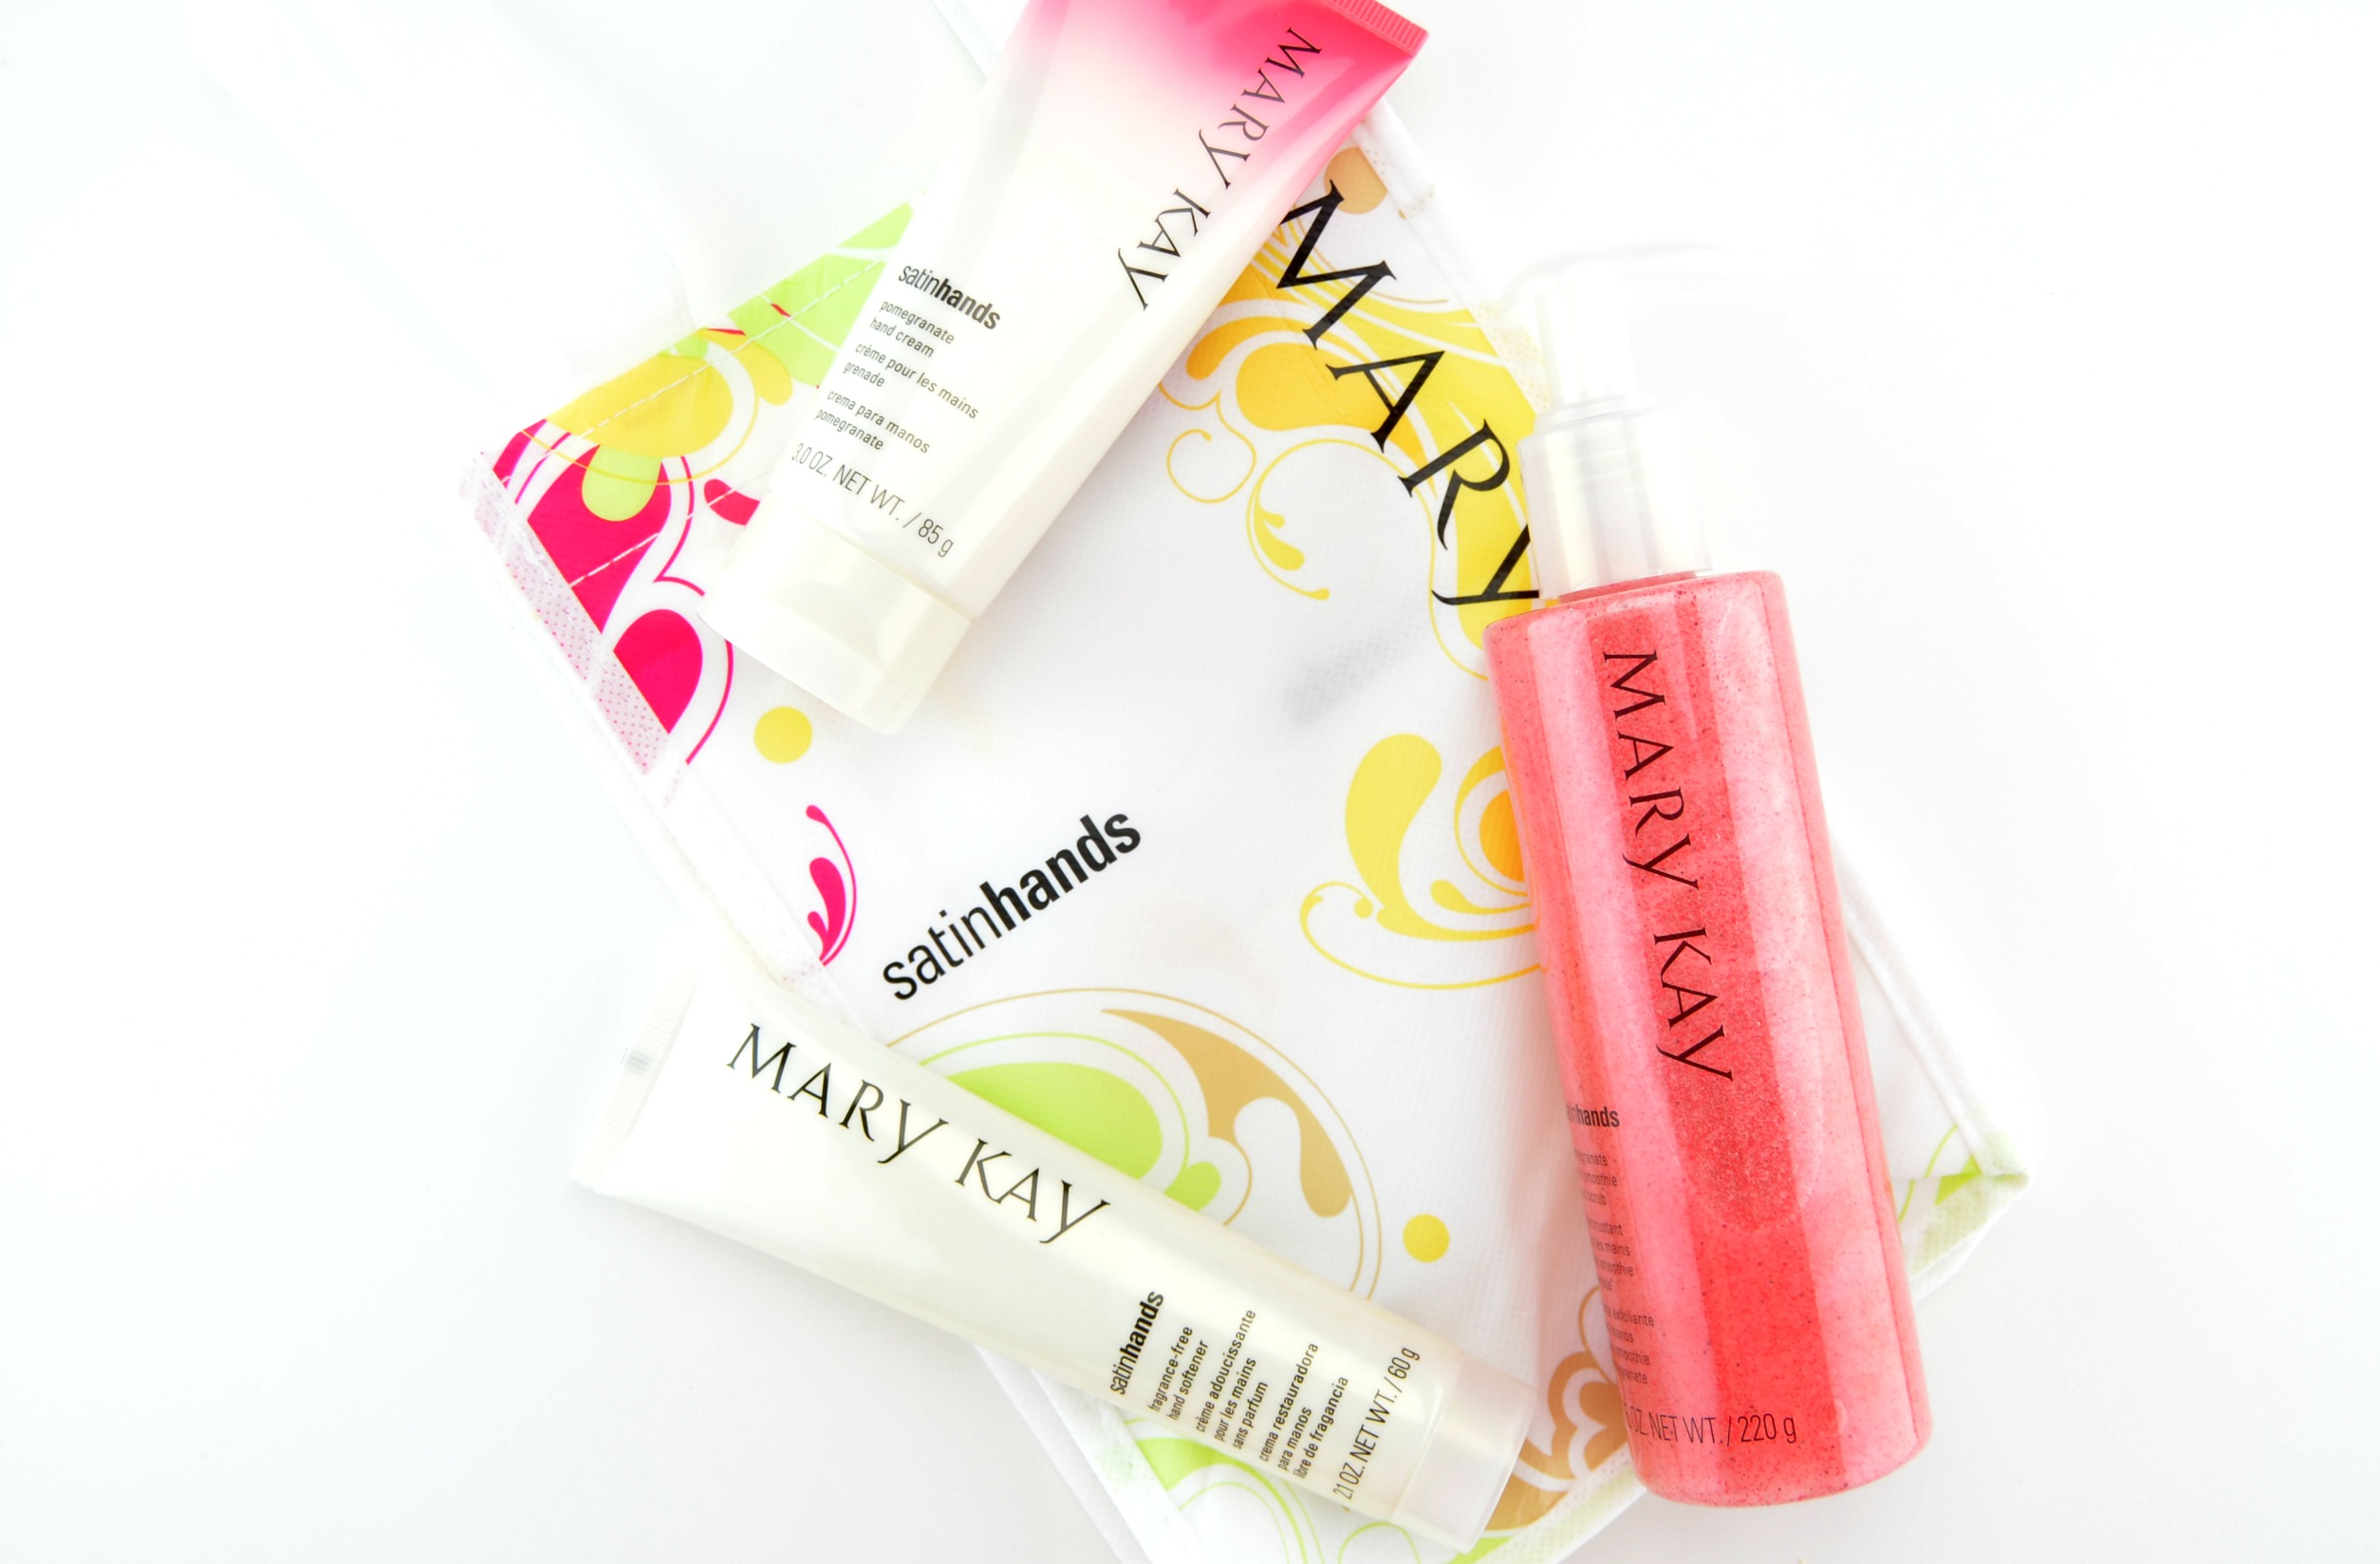 Mary Kay Pomegranate Satin Hands Pampering Set Review